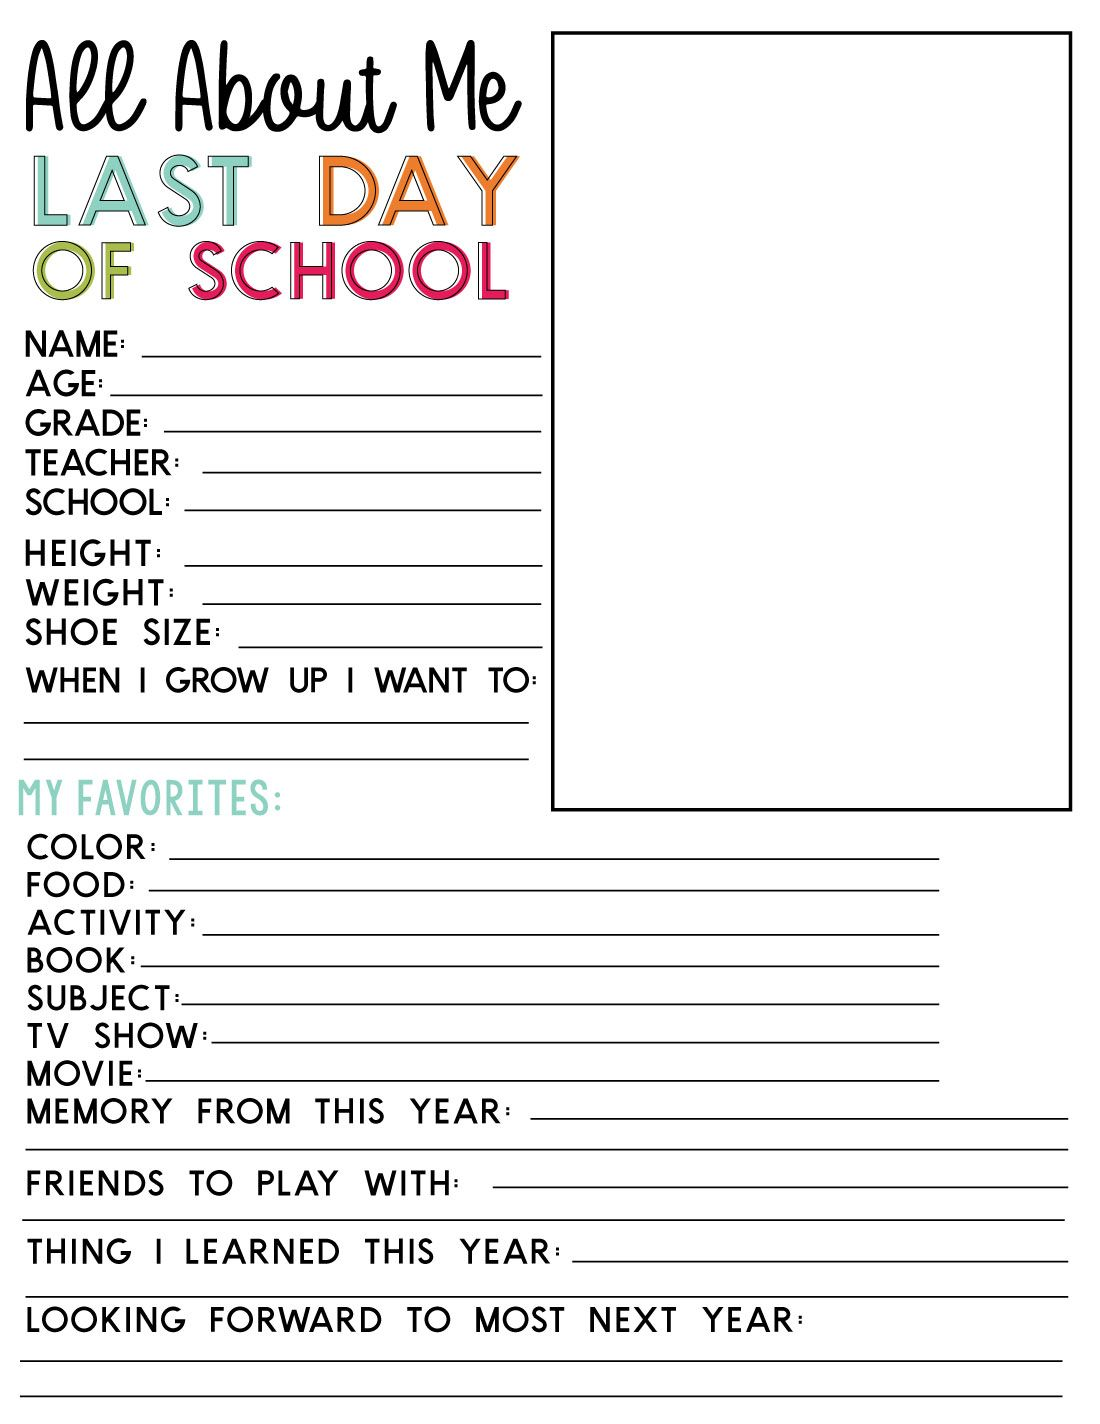 Last Day Of School Printable Fill In Sheet